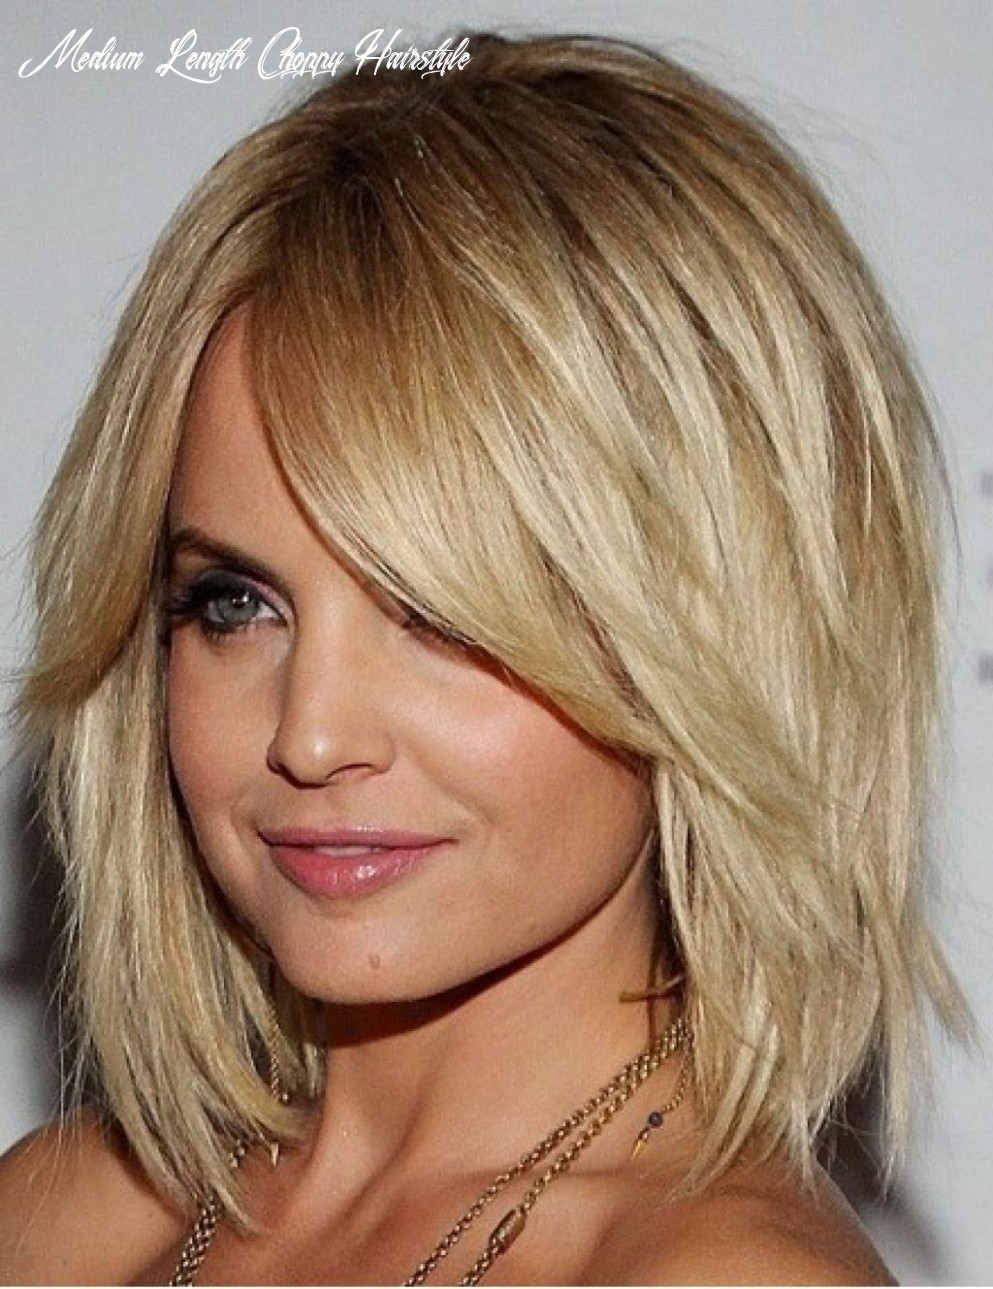 long choppy hairstyle pictures - WOW.com - Image Results | Hair ...